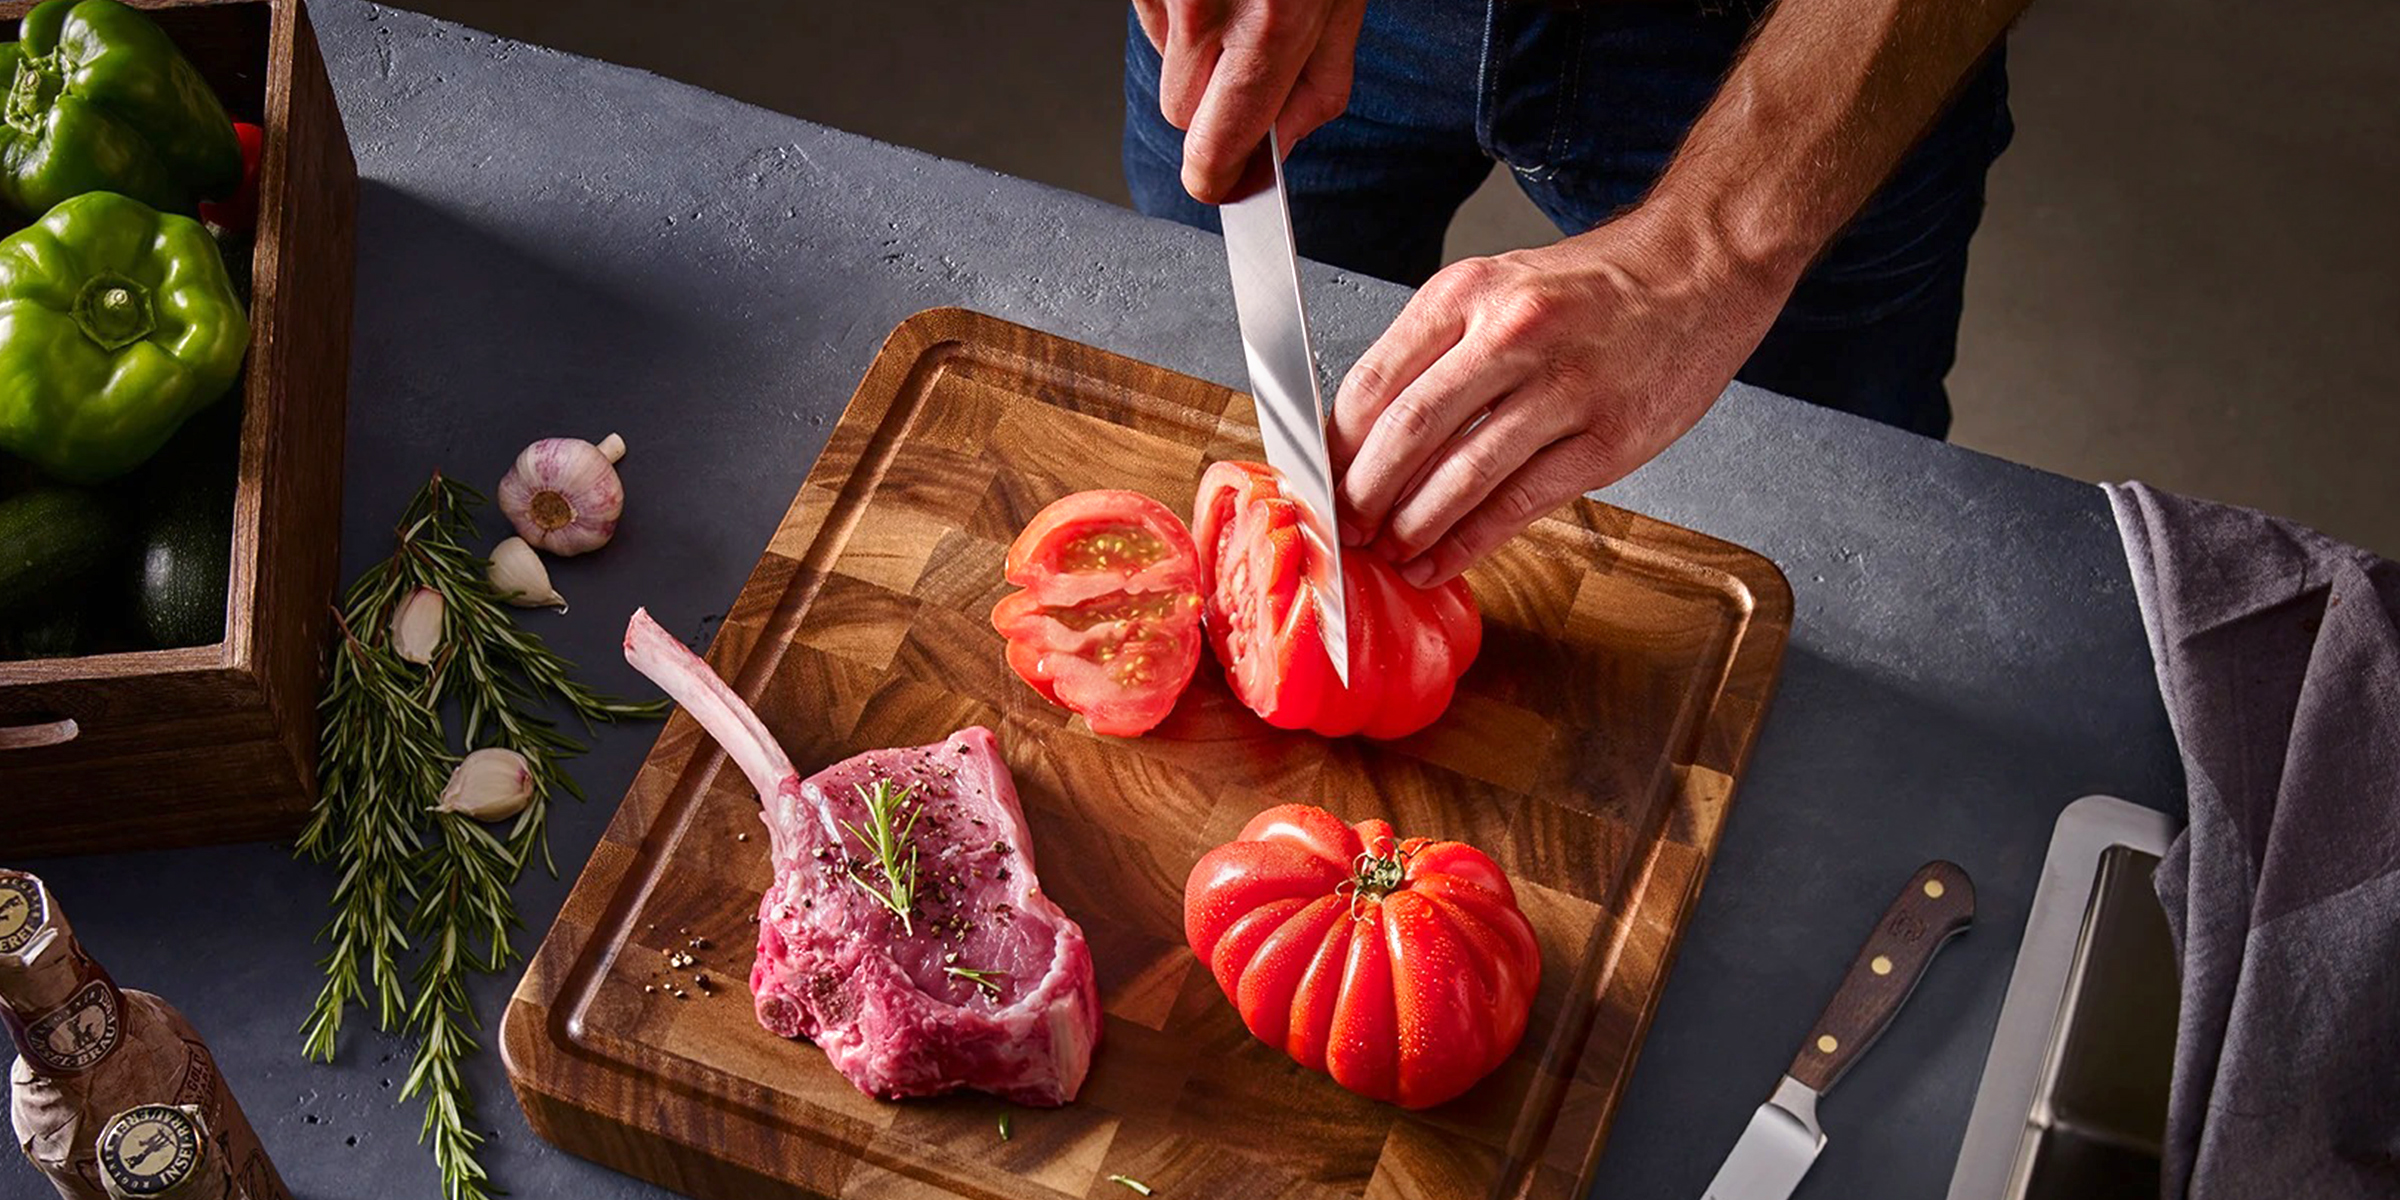 Best Kitchen Knives And How To Buy Them According To Experts